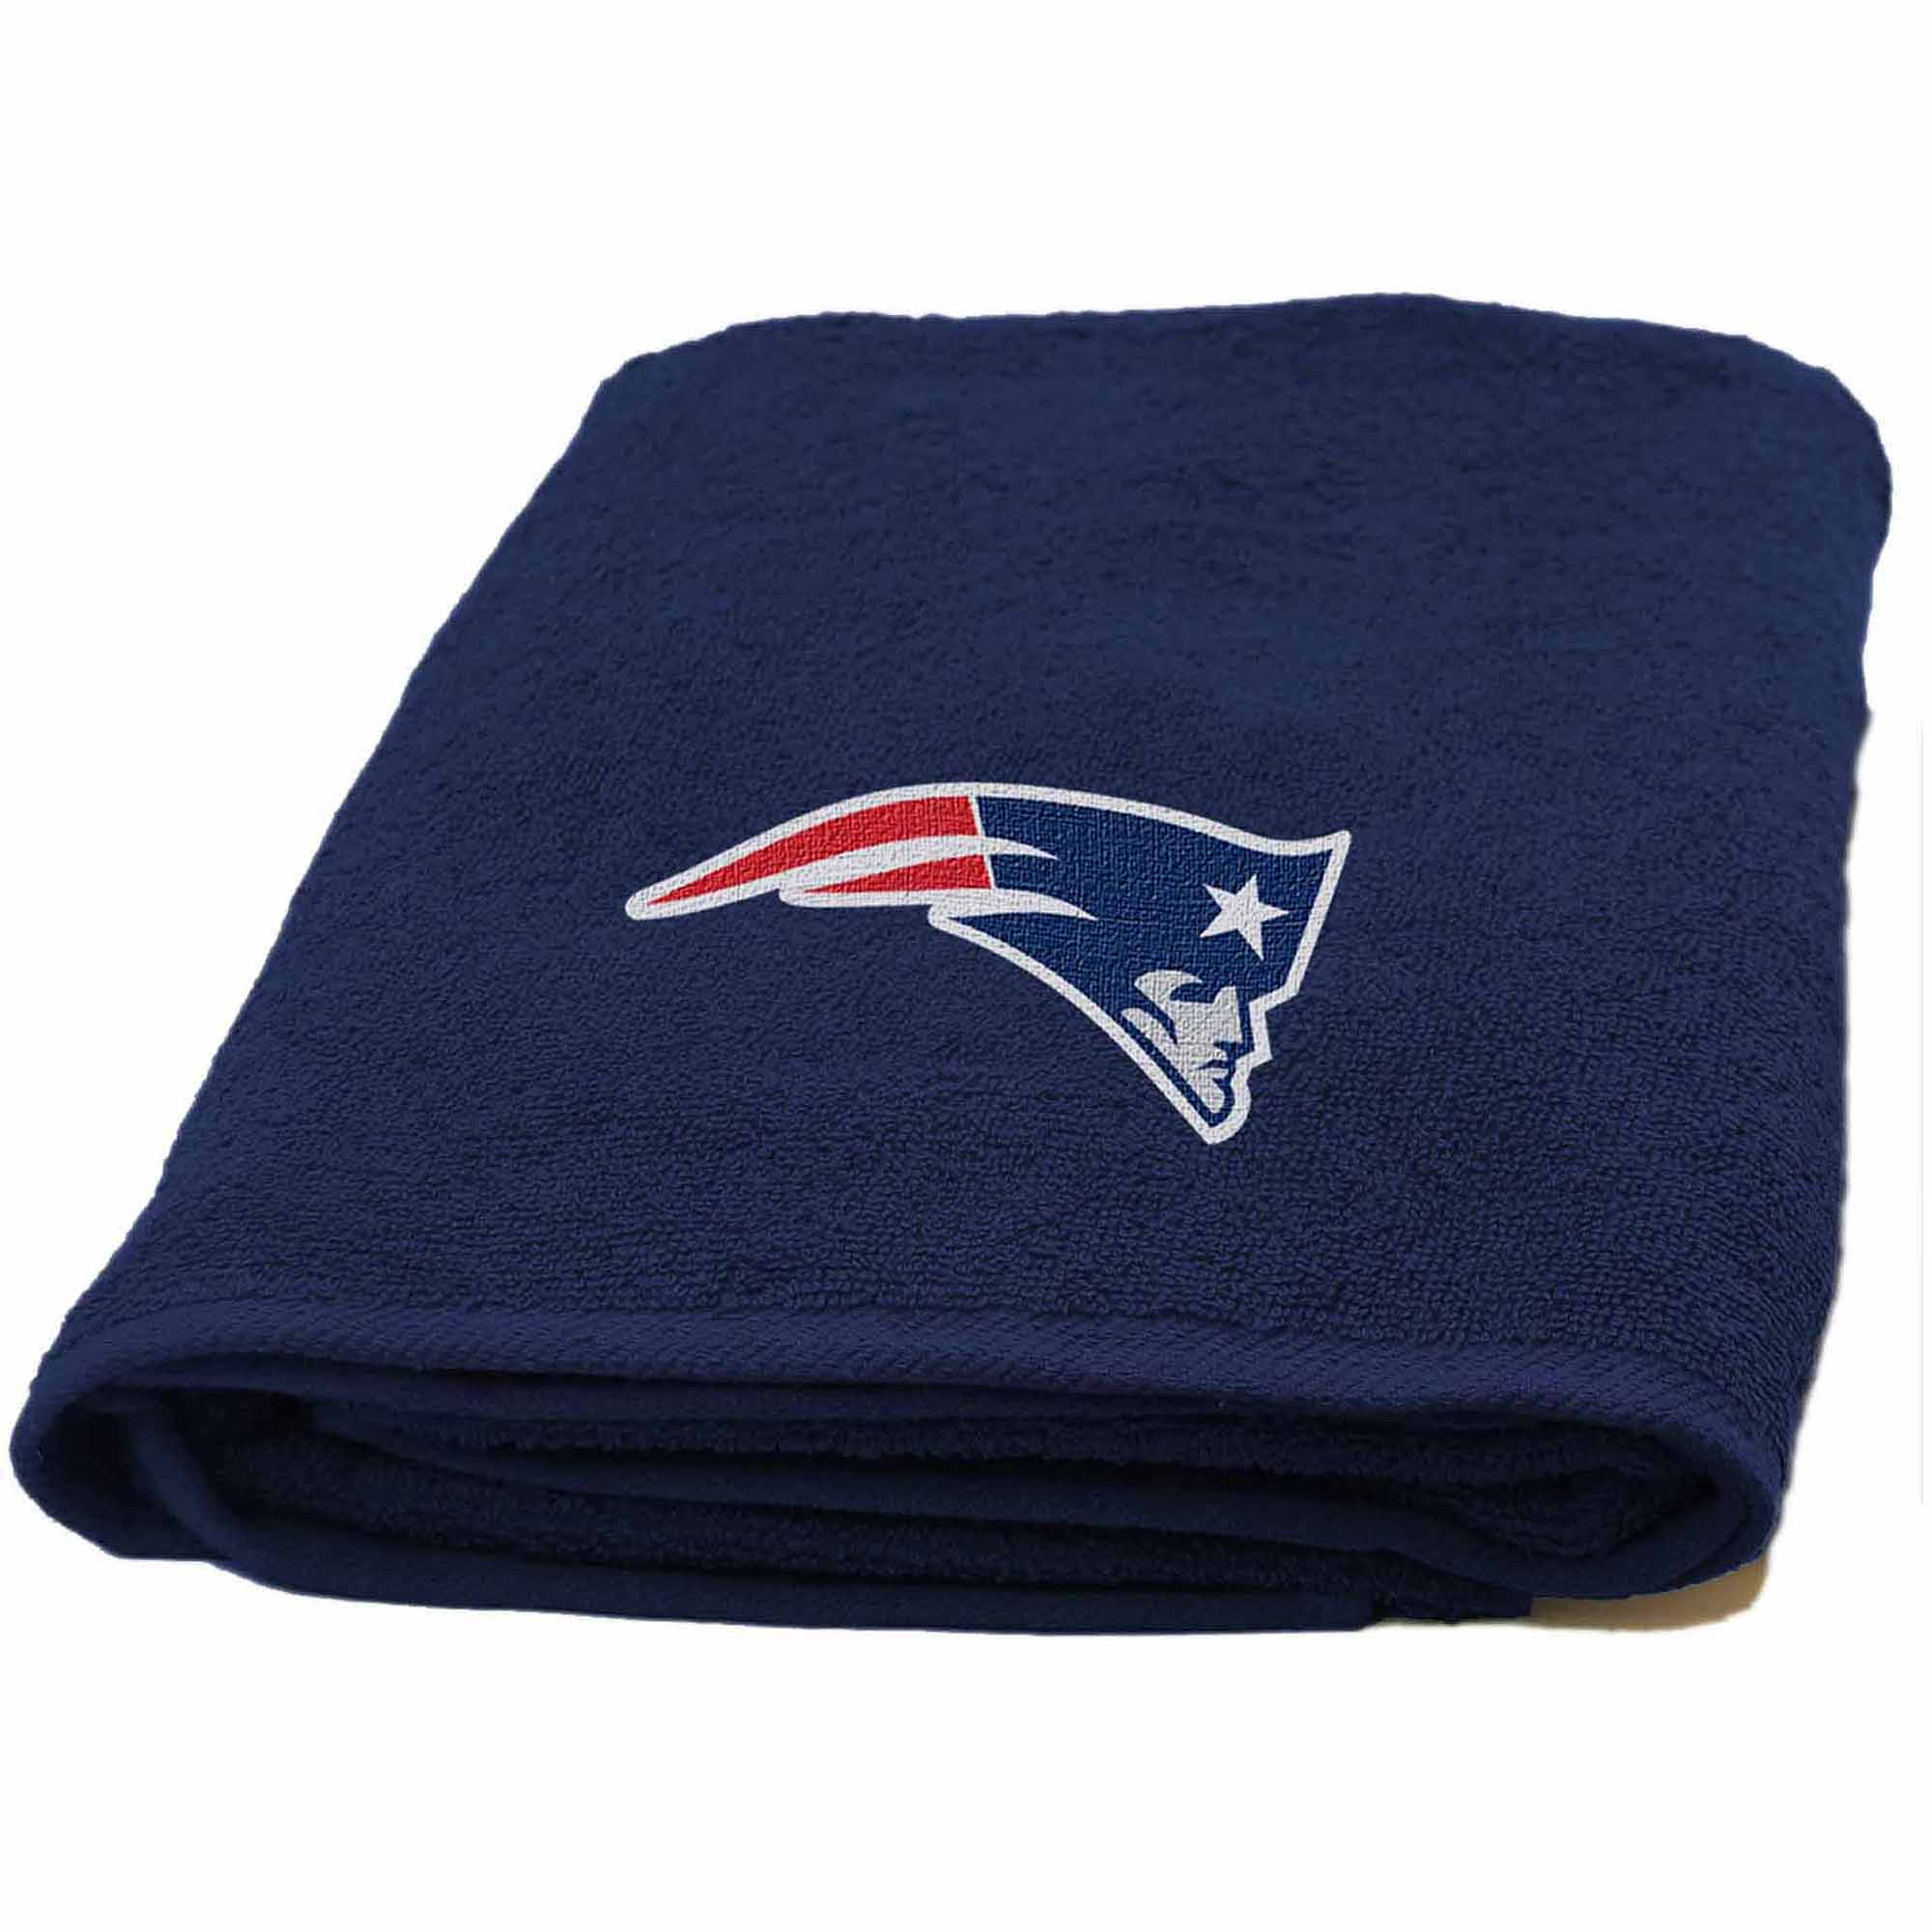 NFL New England Patriots Decorative Bath Collection - Bath Towel